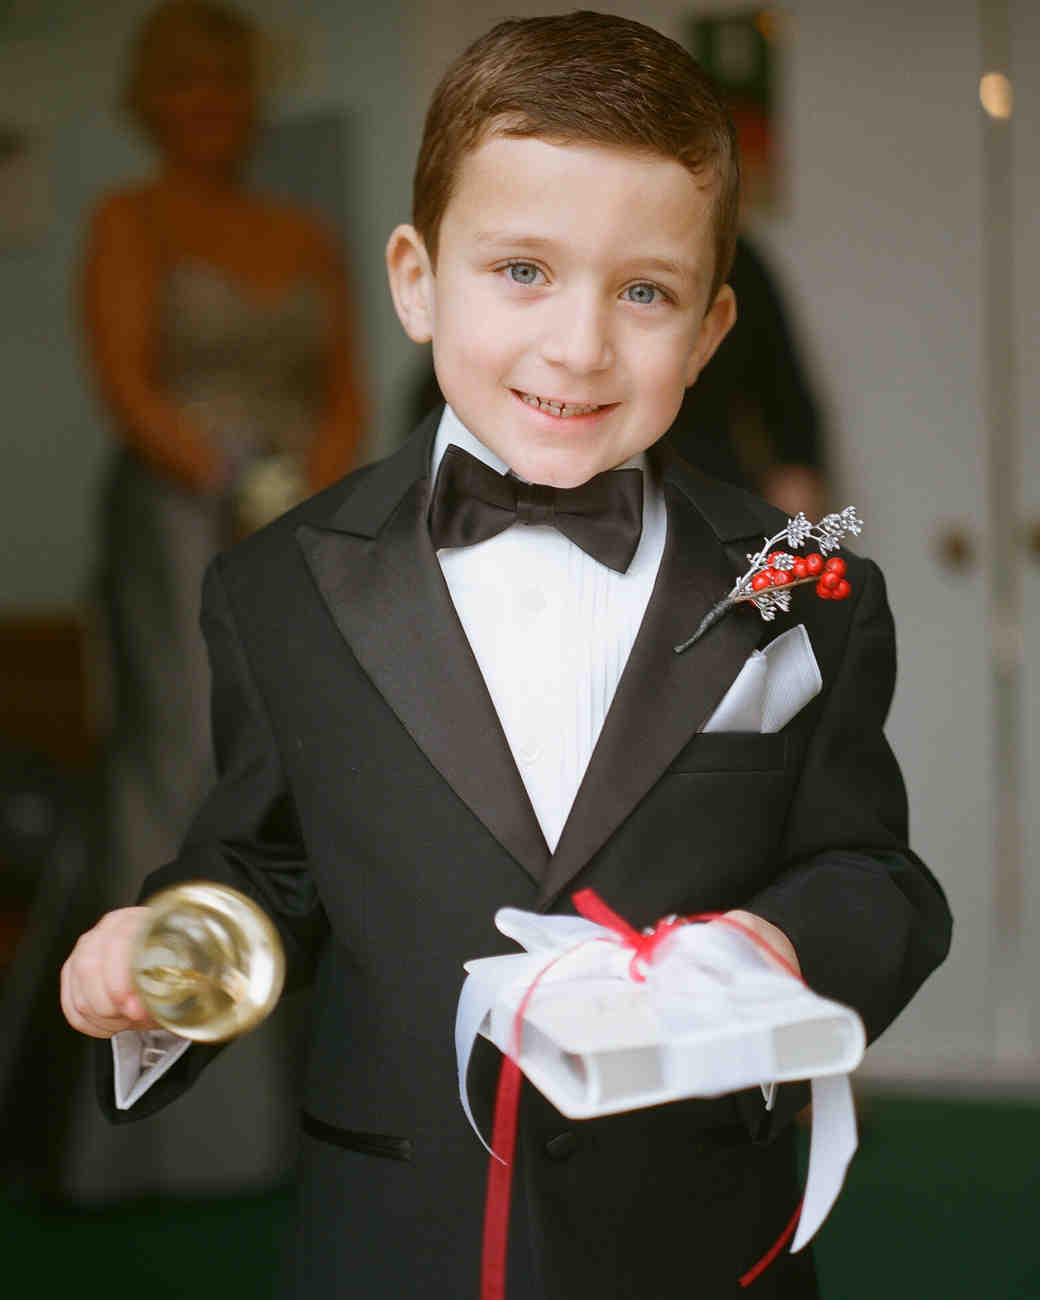 paige-michael-wedding-ringbearer-0621-s112431-1215.jpg